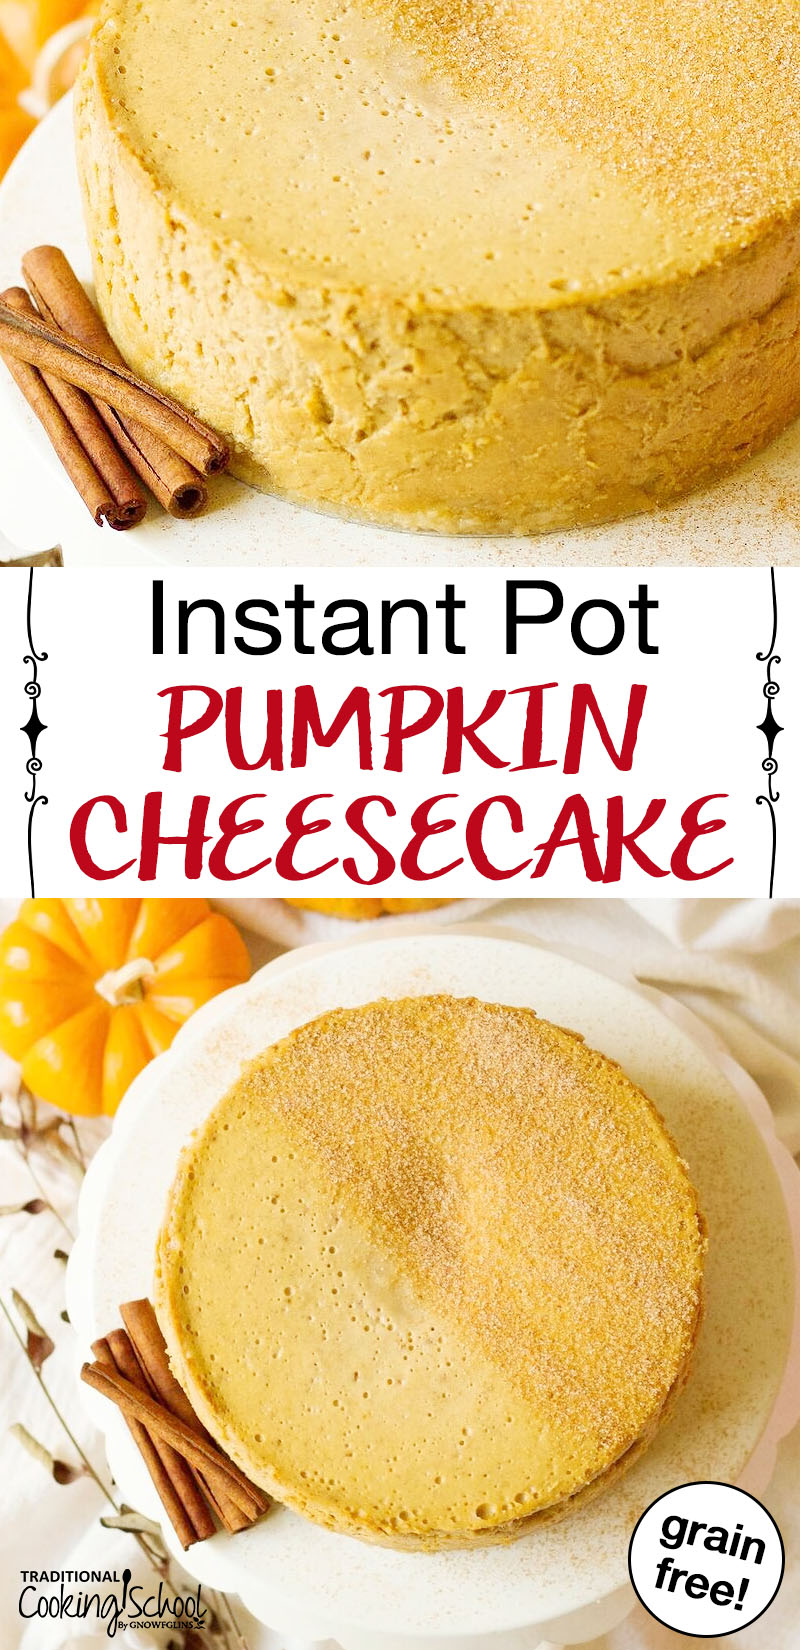 """photo collage of pumpkin cheesecake with text overlay: """"Instant Pot Pumpkin Cheesecake"""""""